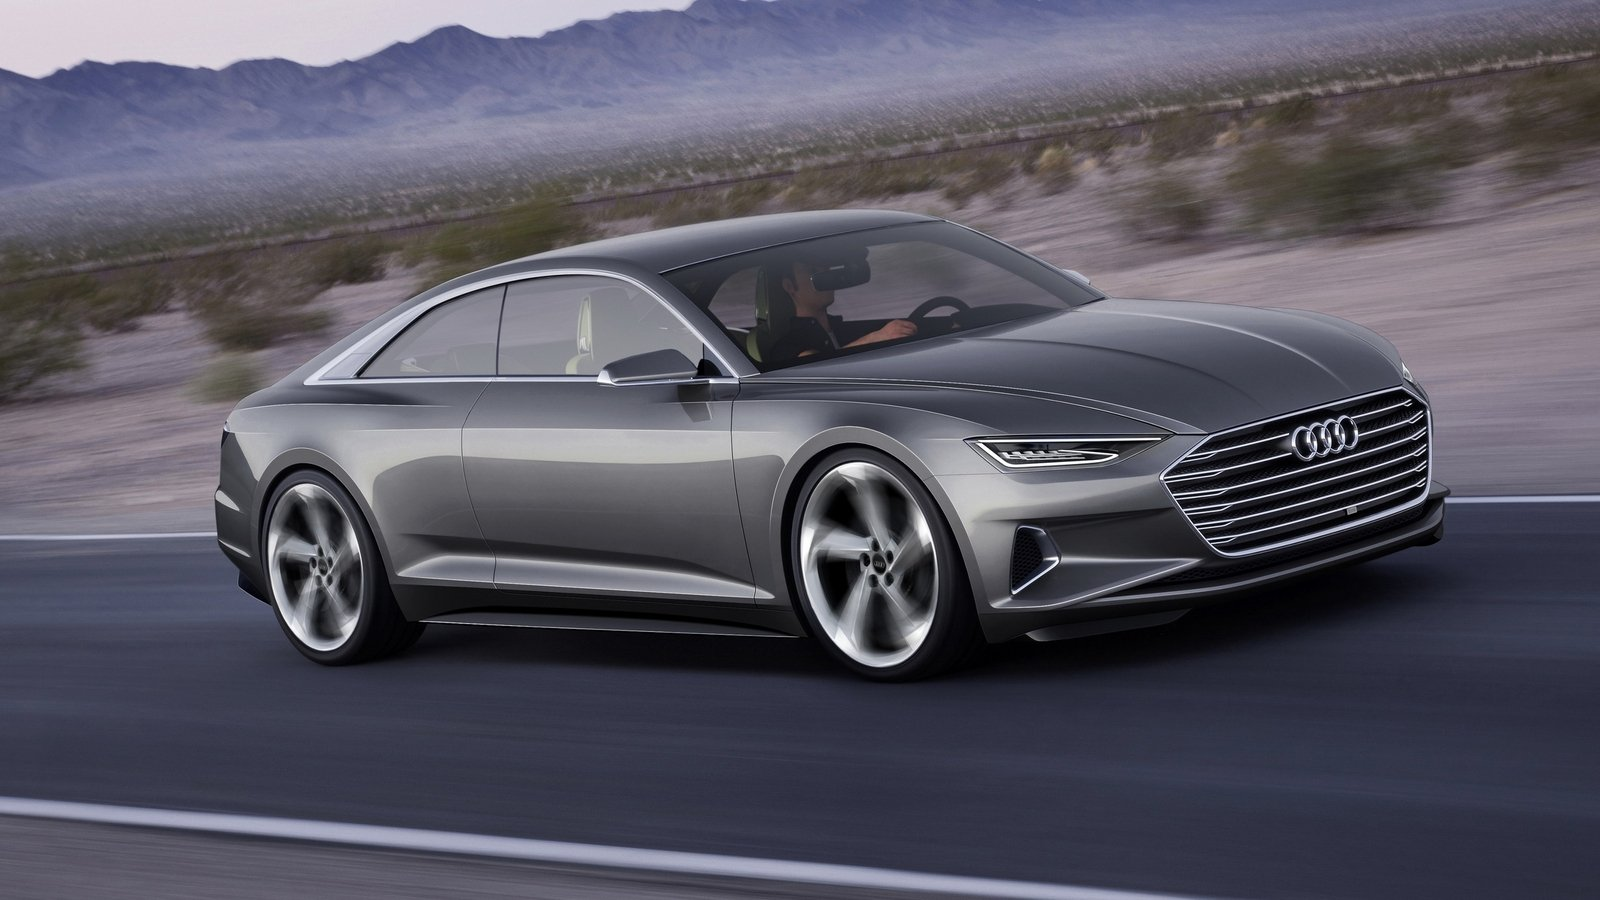 2015 audi prologue piloted driving concept picture 609104 car review top speed. Black Bedroom Furniture Sets. Home Design Ideas